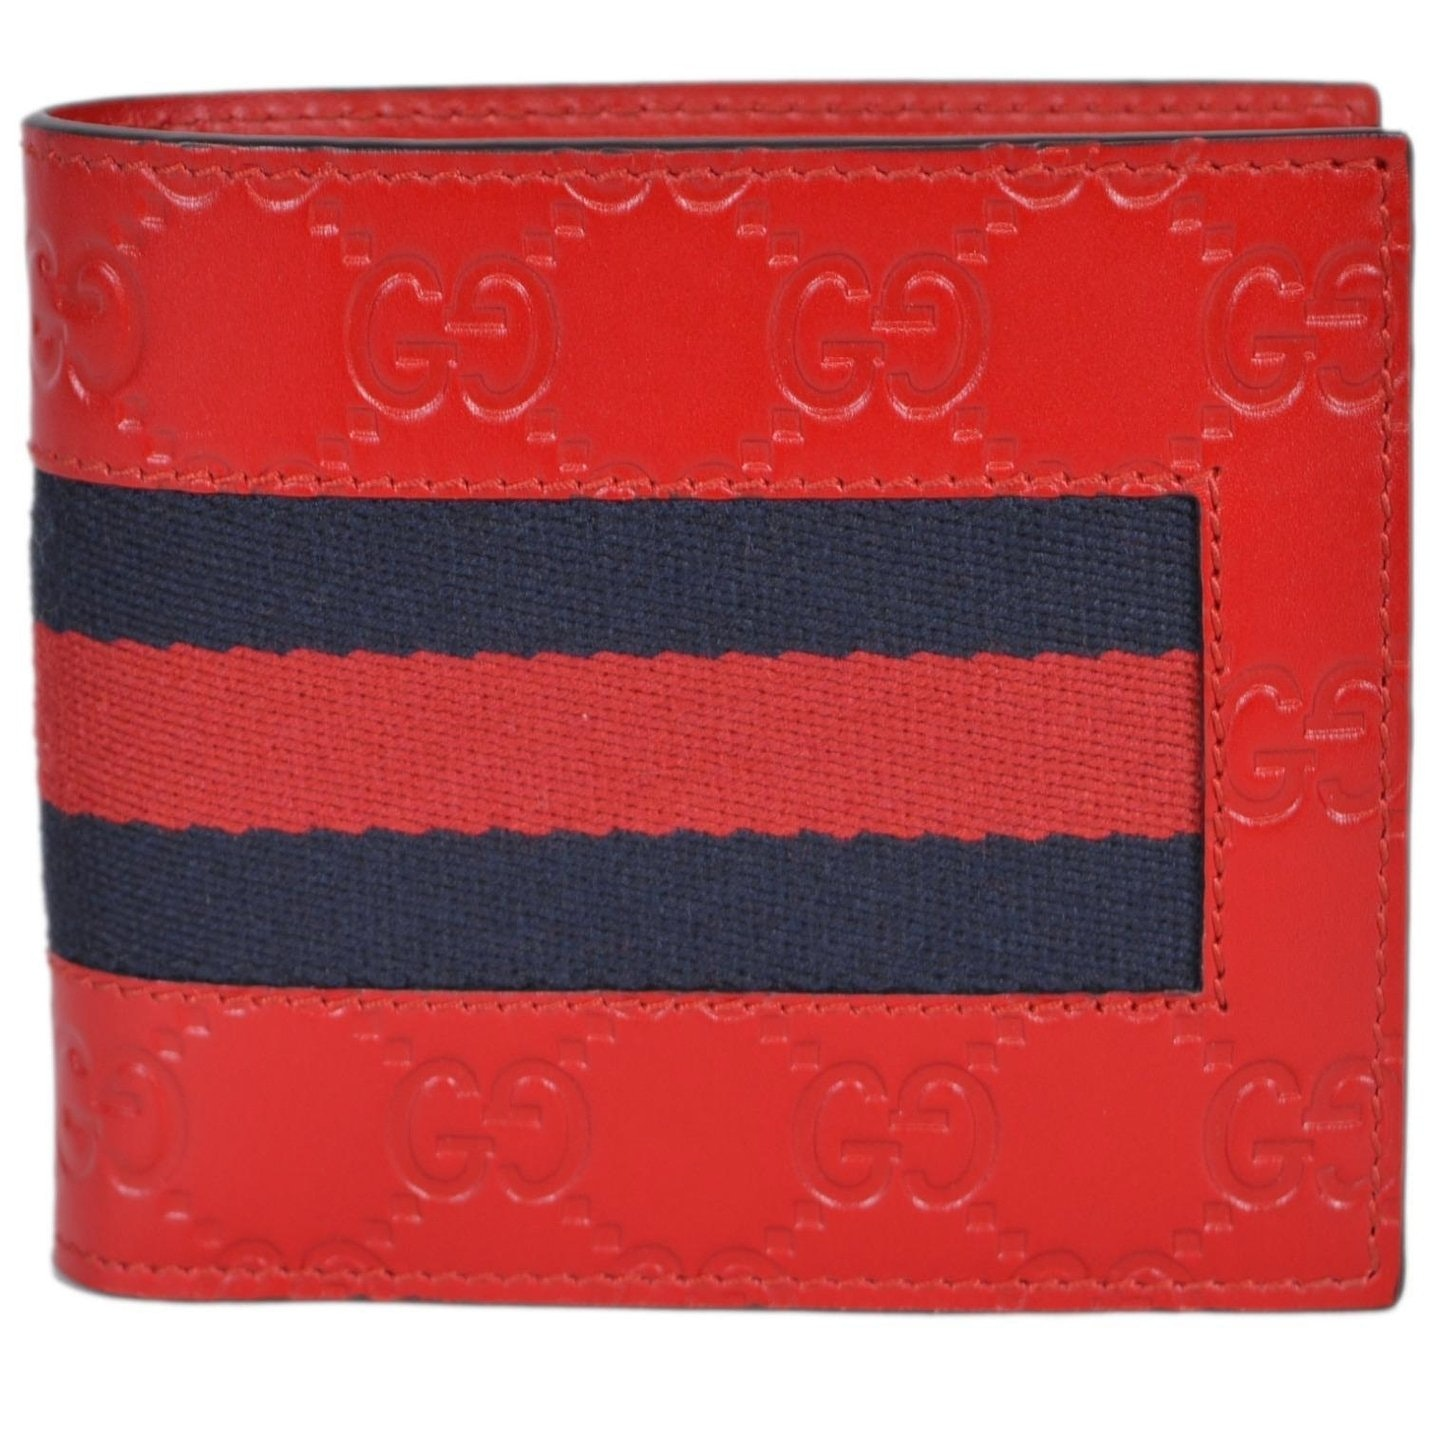 Gucci Coin Pouch Bifold Wallet Guccissima Web Hibiscus Red